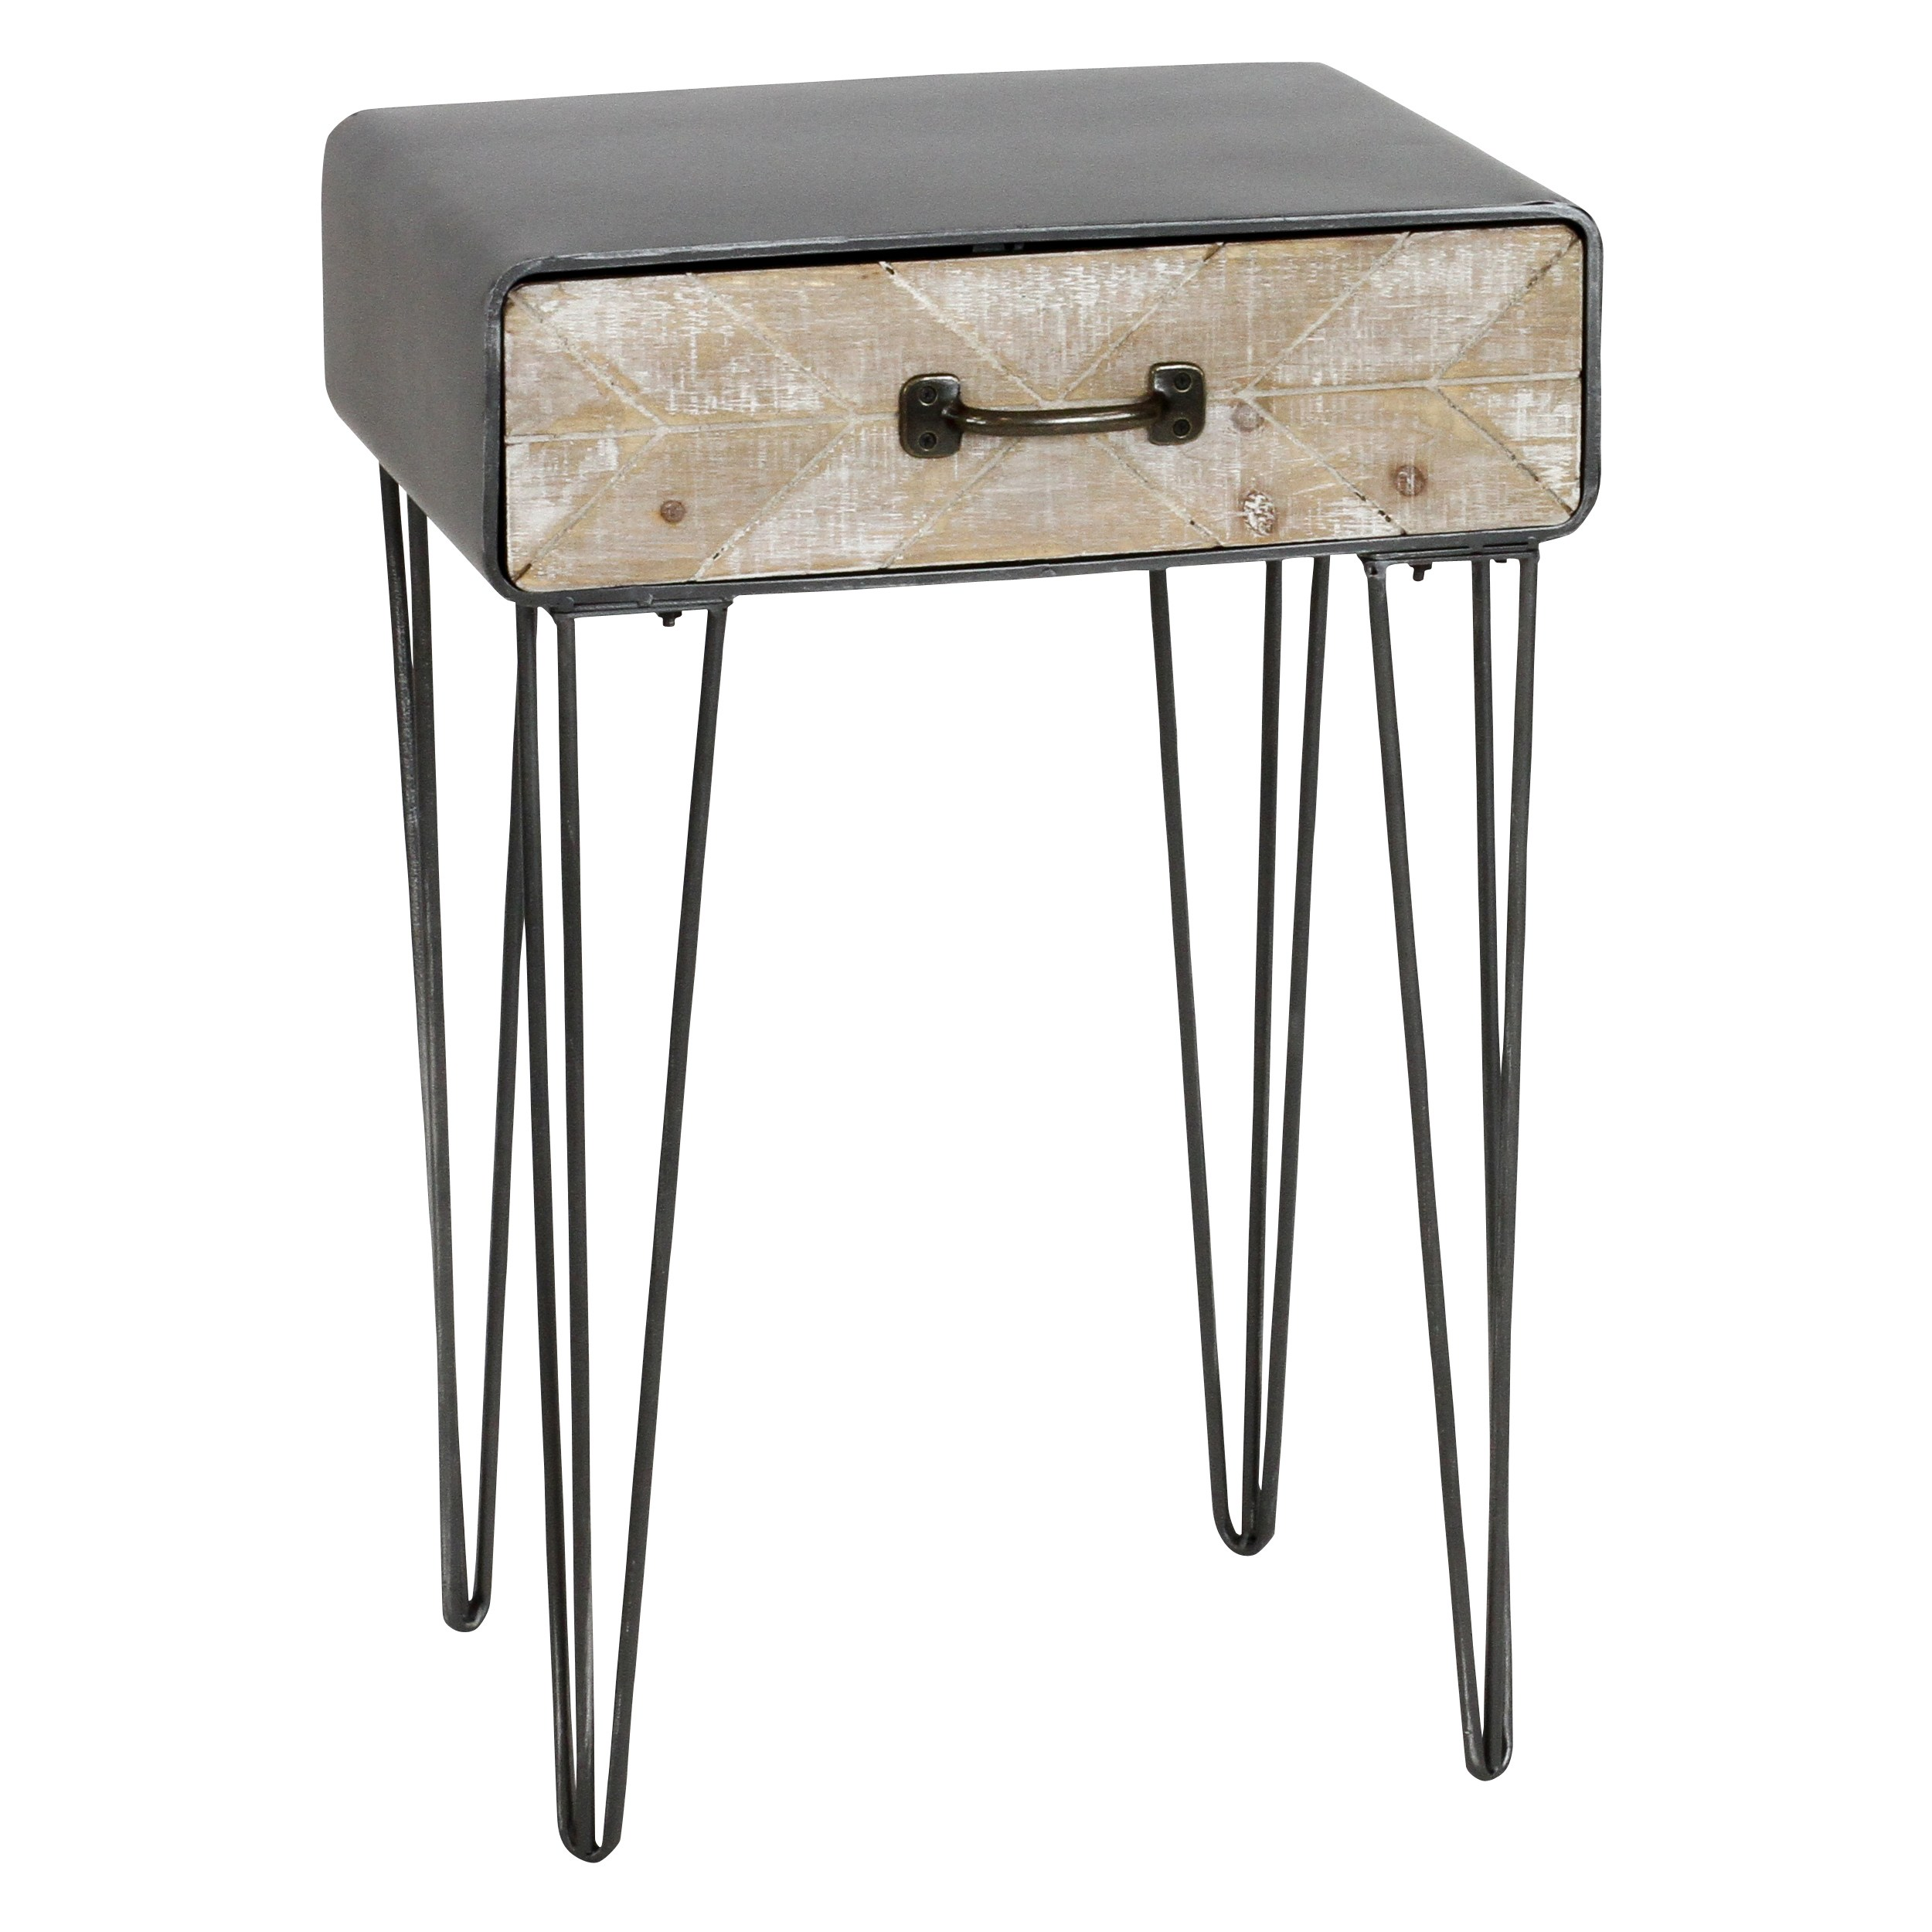 felton grey wood metal accent table with drawer free shipping drawers today home and decor square marble dining hall west elm henry sofa reviews console mirror set butler end